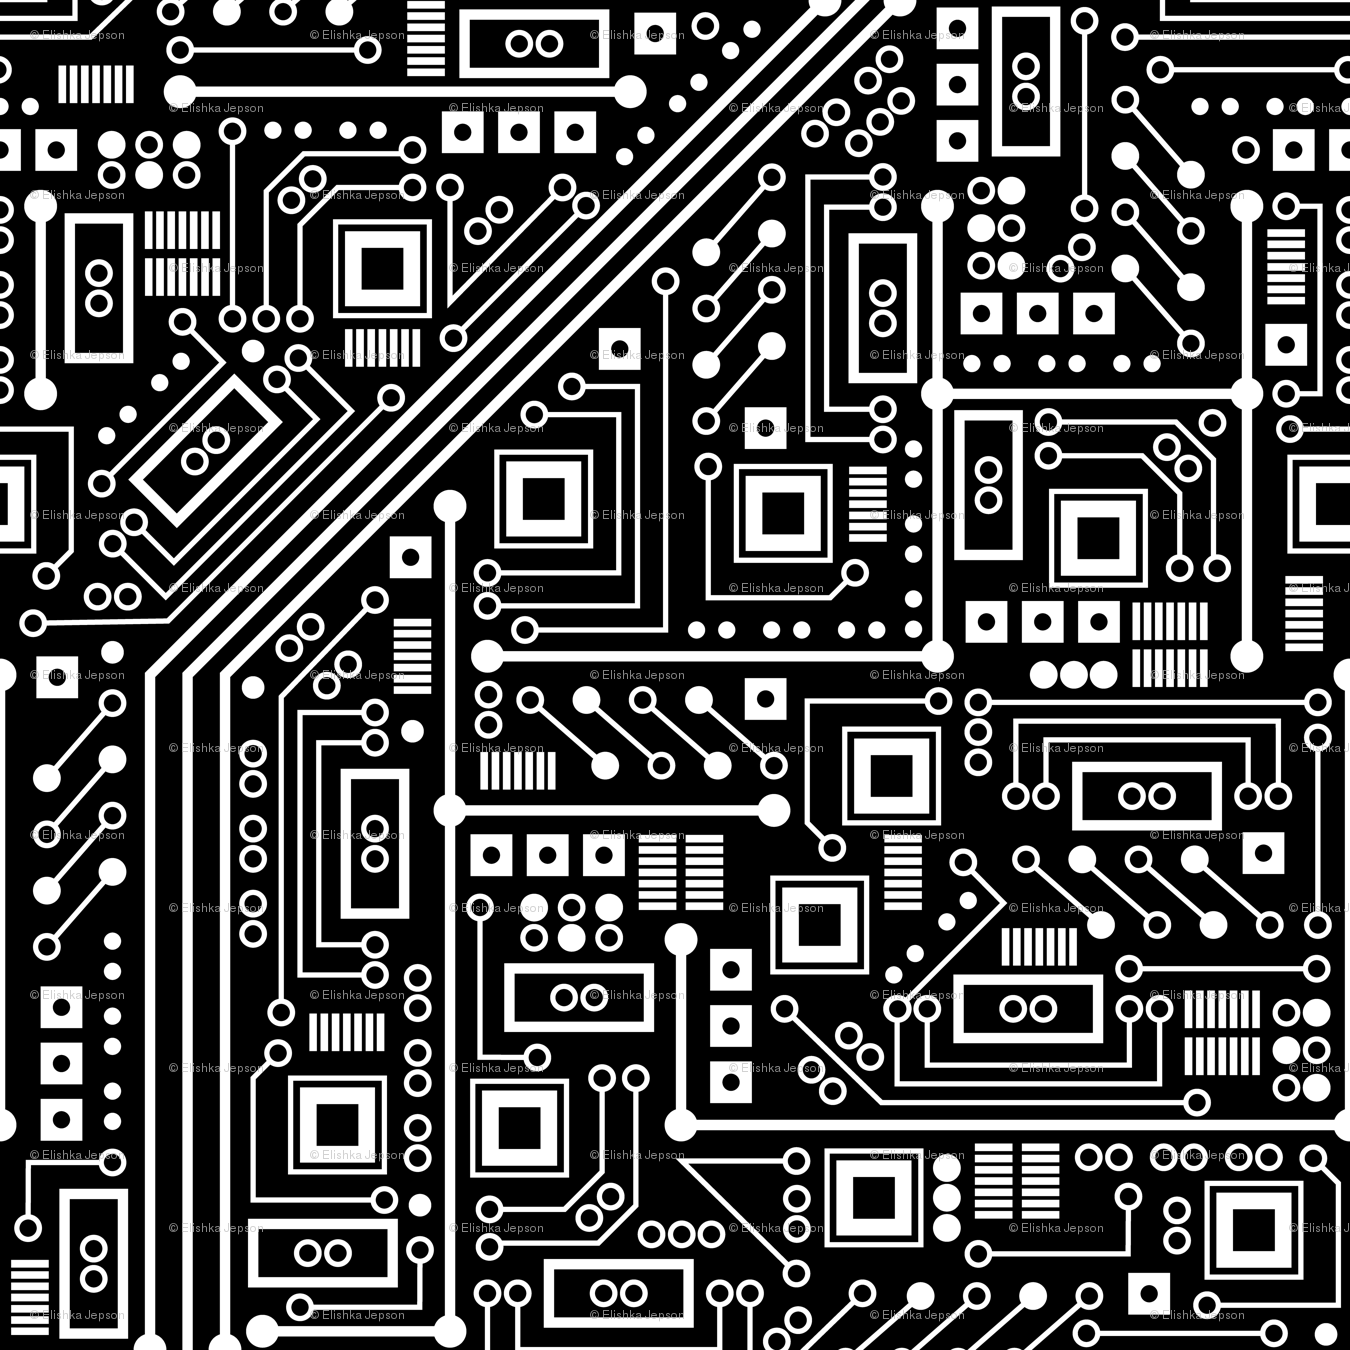 Robot Circuit Board (Black and White) giftwrap.